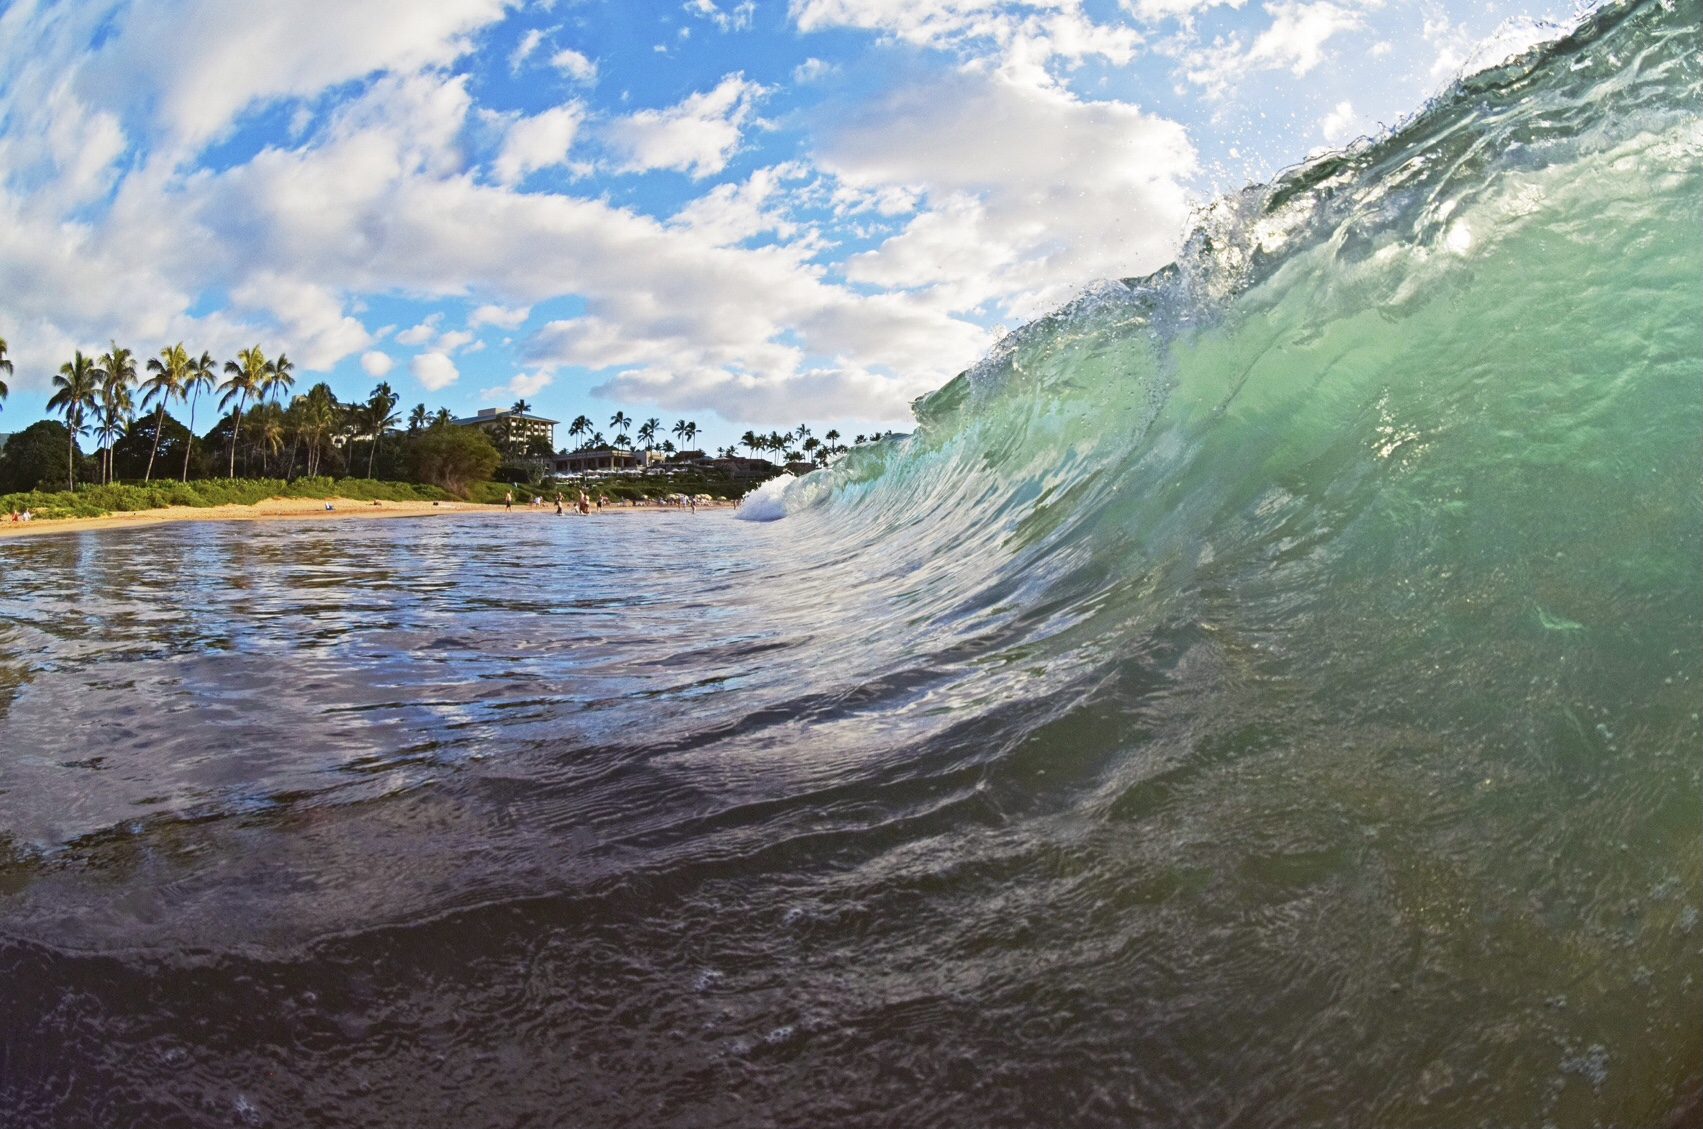 Maui waves are one of the attractions on the island